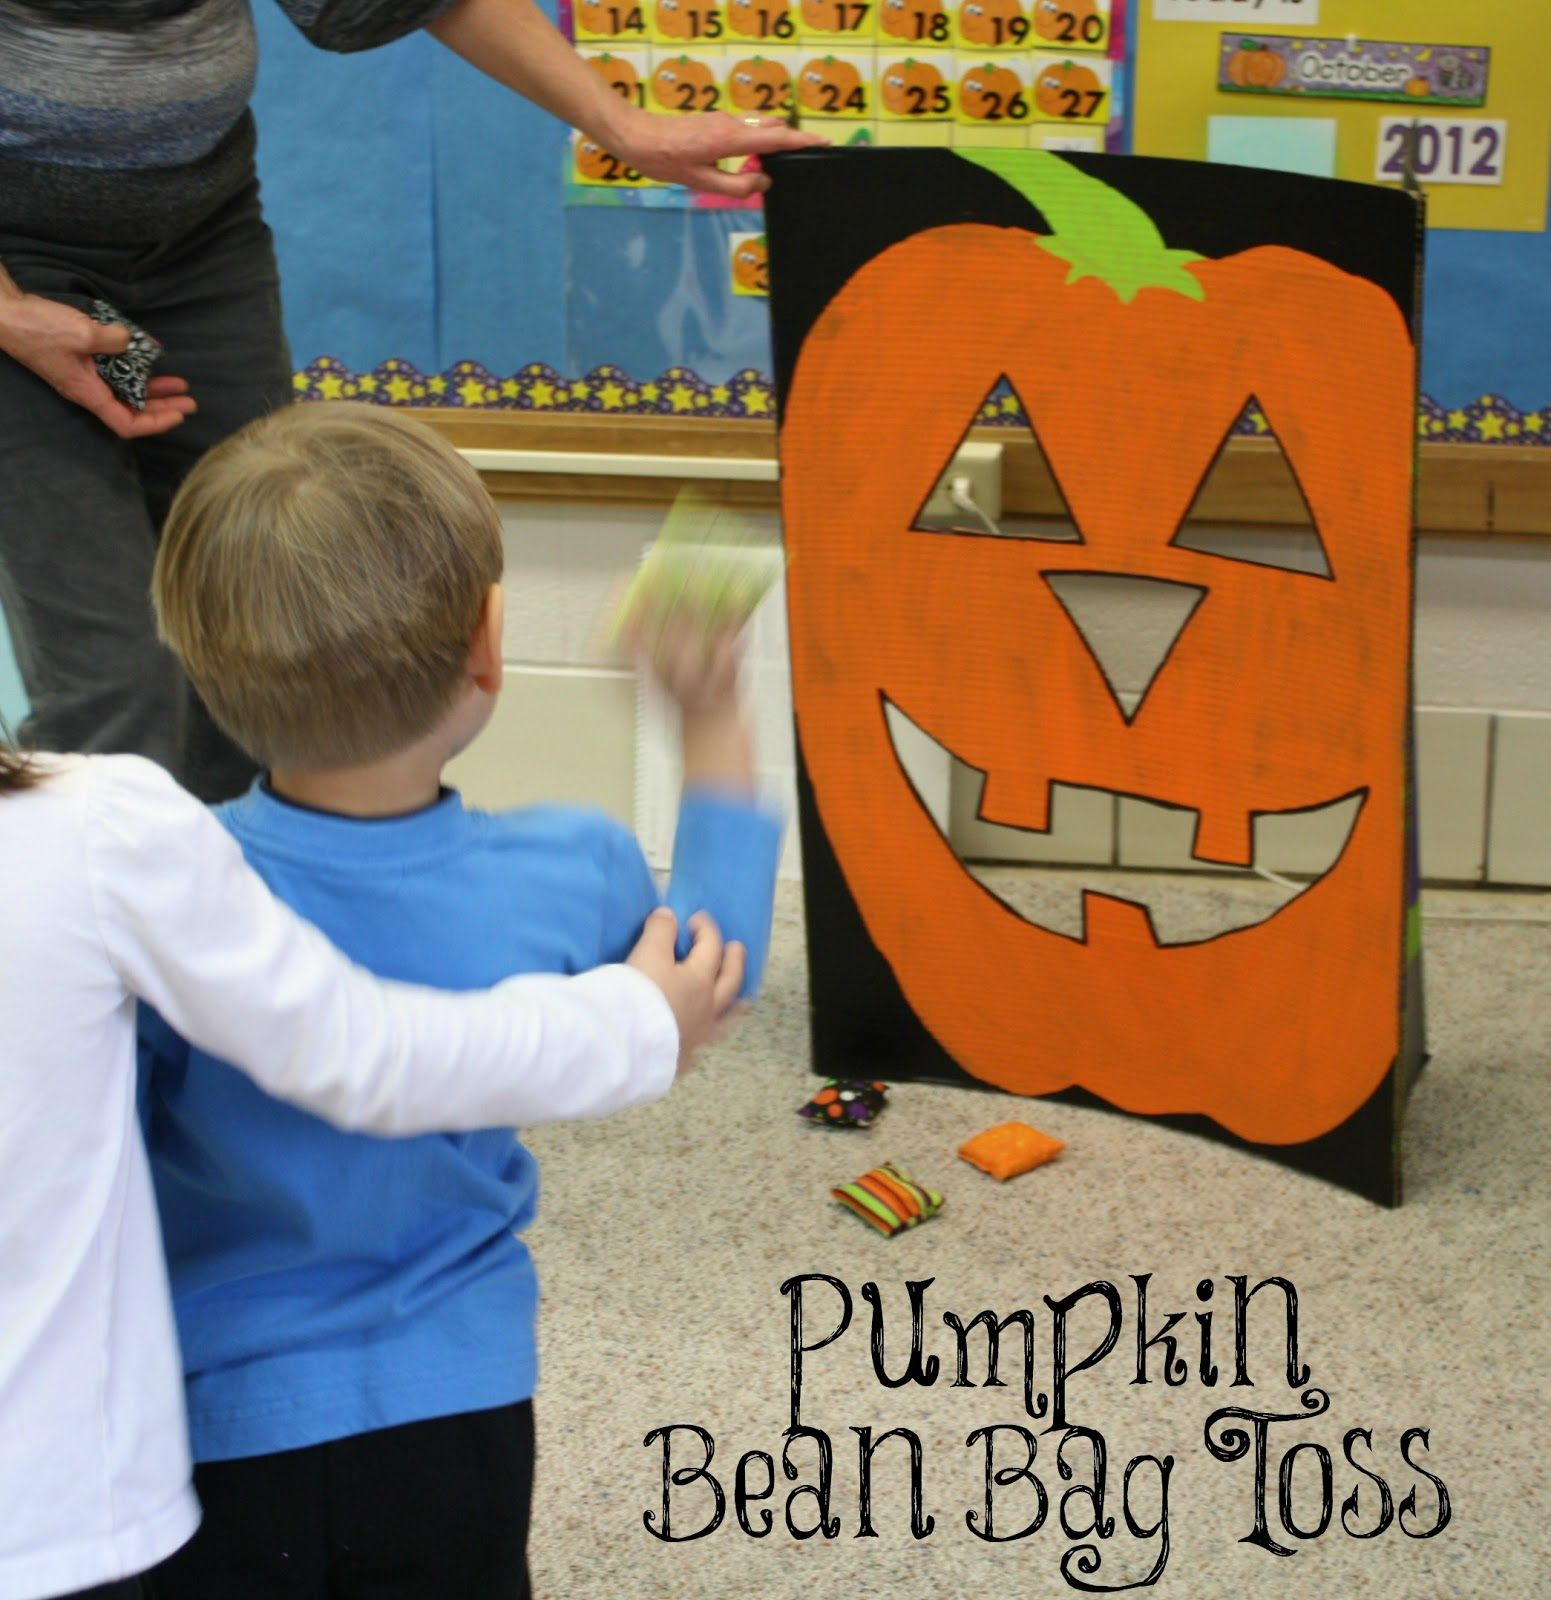 Tremendous For What Its Worth Or Not Diy Pumpkin Bean Bag Toss Onthecornerstone Fun Painted Chair Ideas Images Onthecornerstoneorg